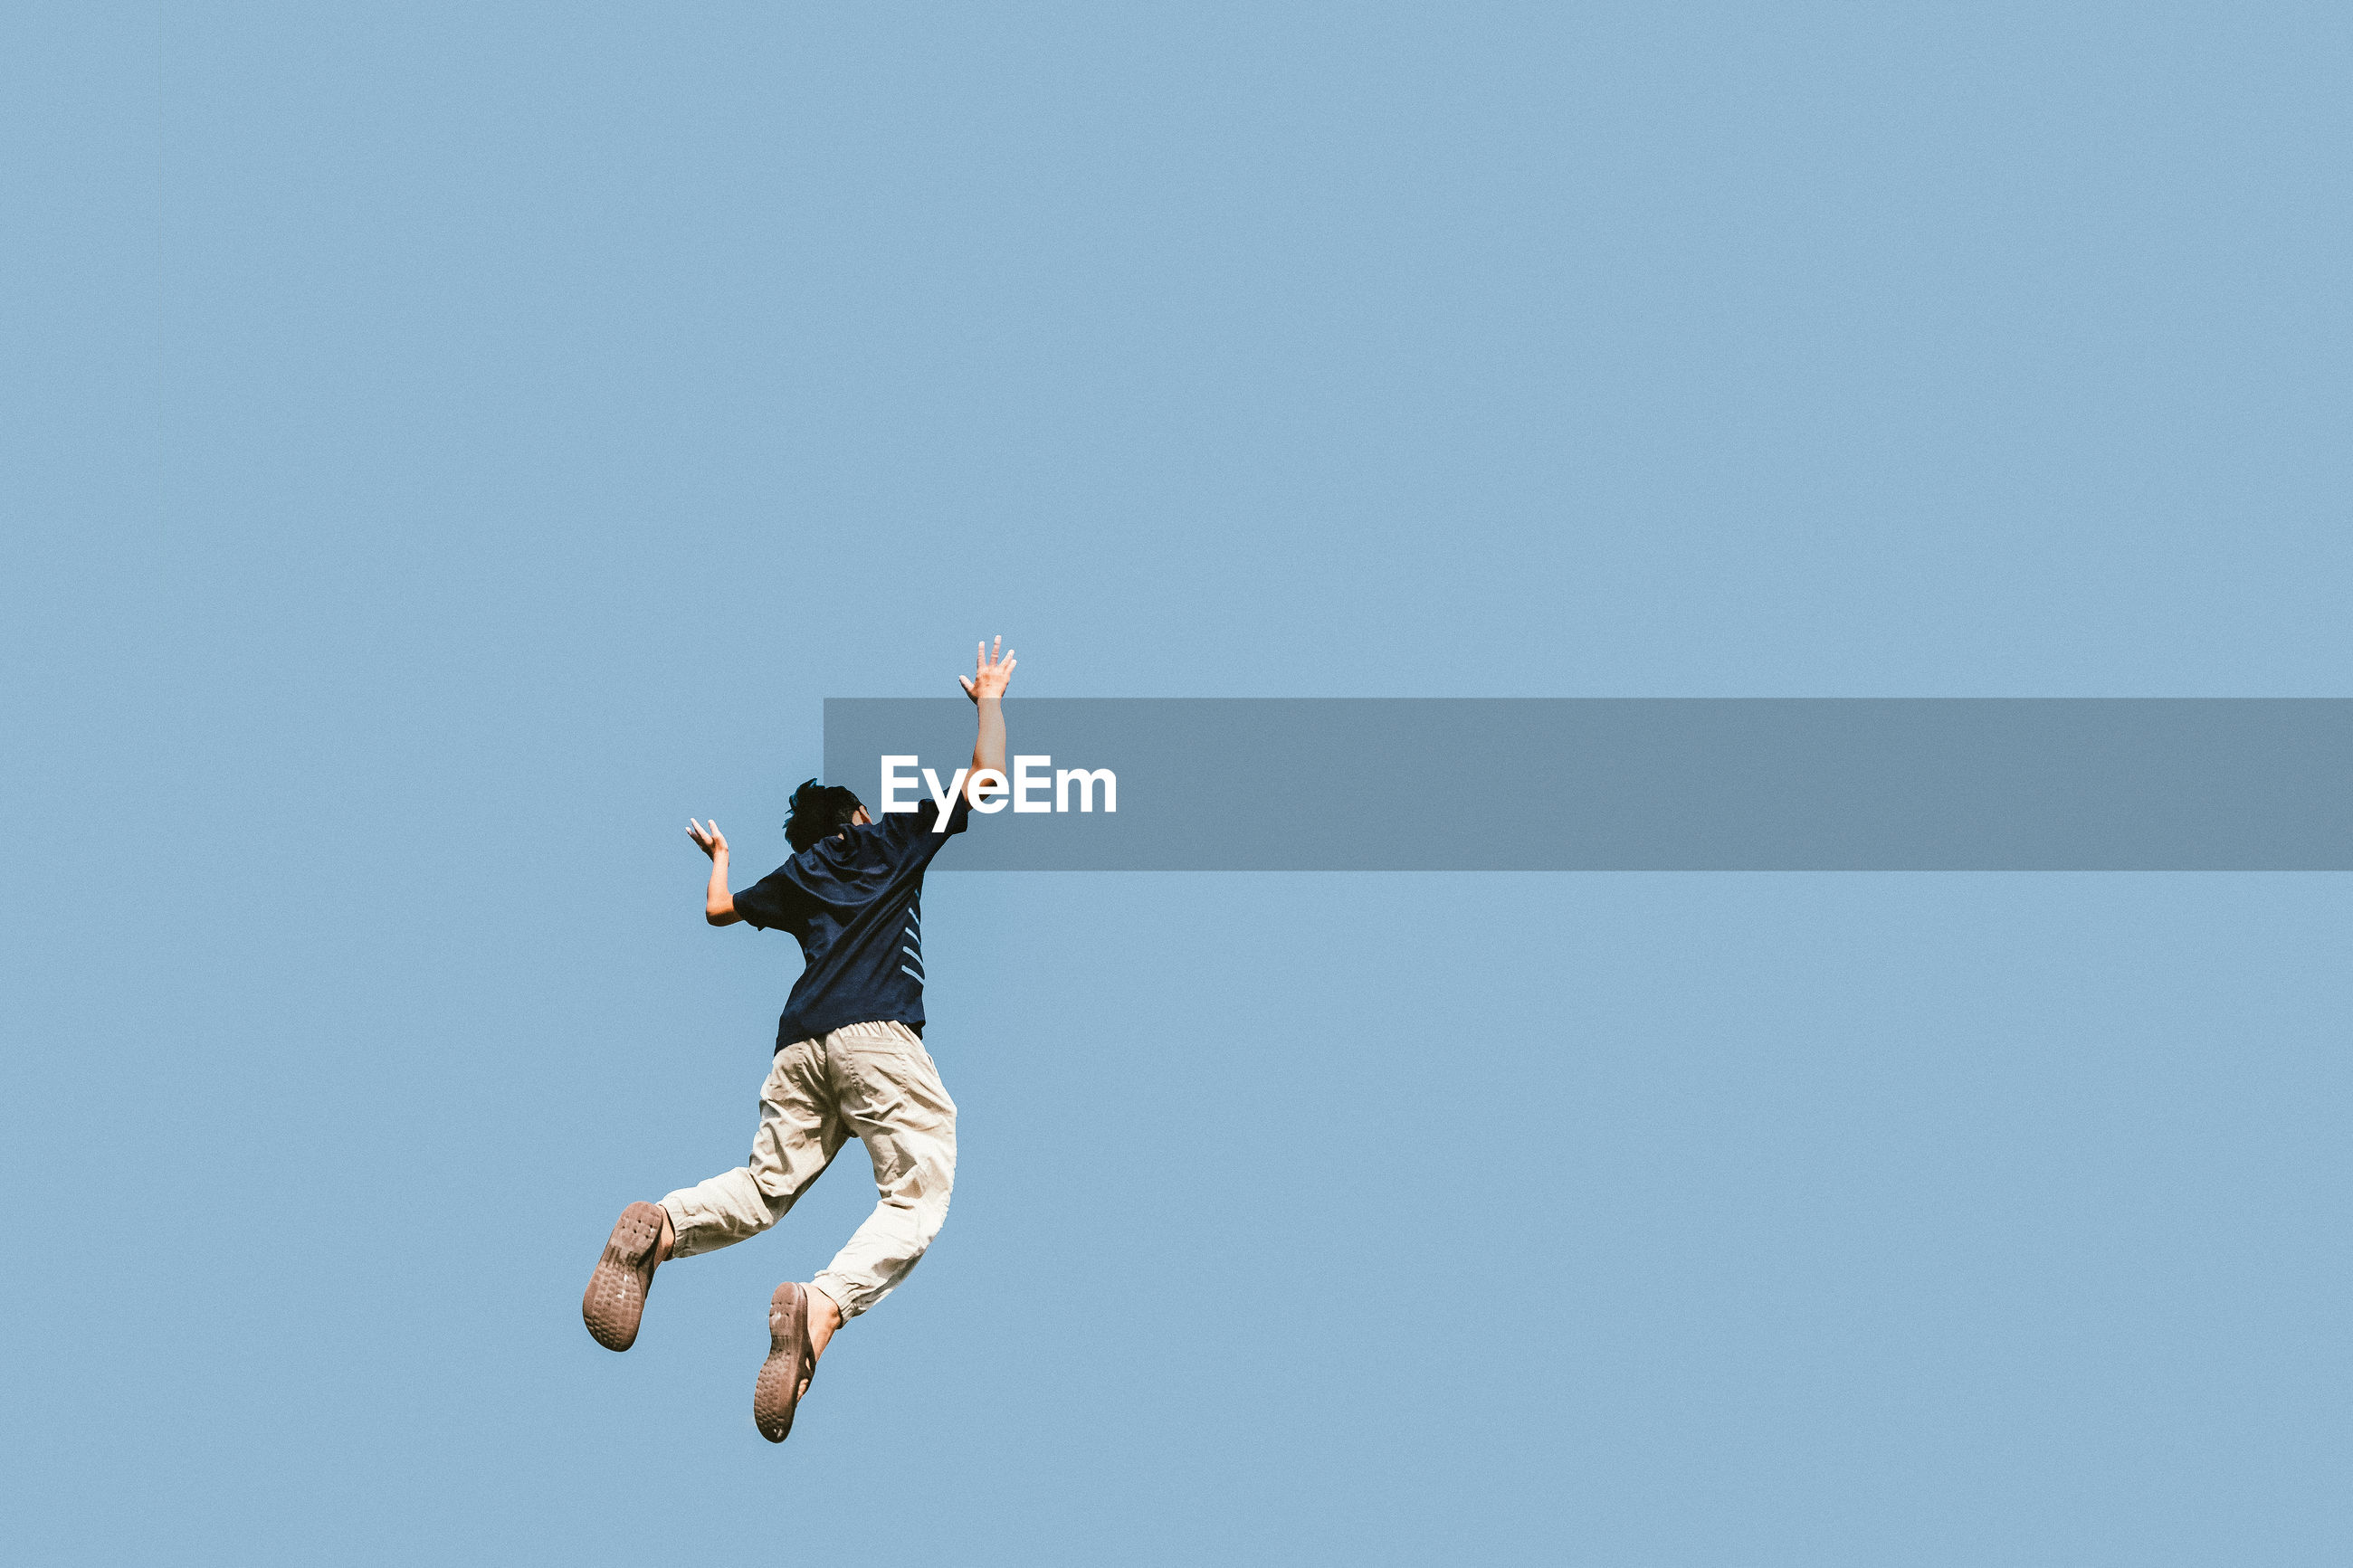 LOW ANGLE VIEW OF MAN JUMPING AGAINST BLUE SKY